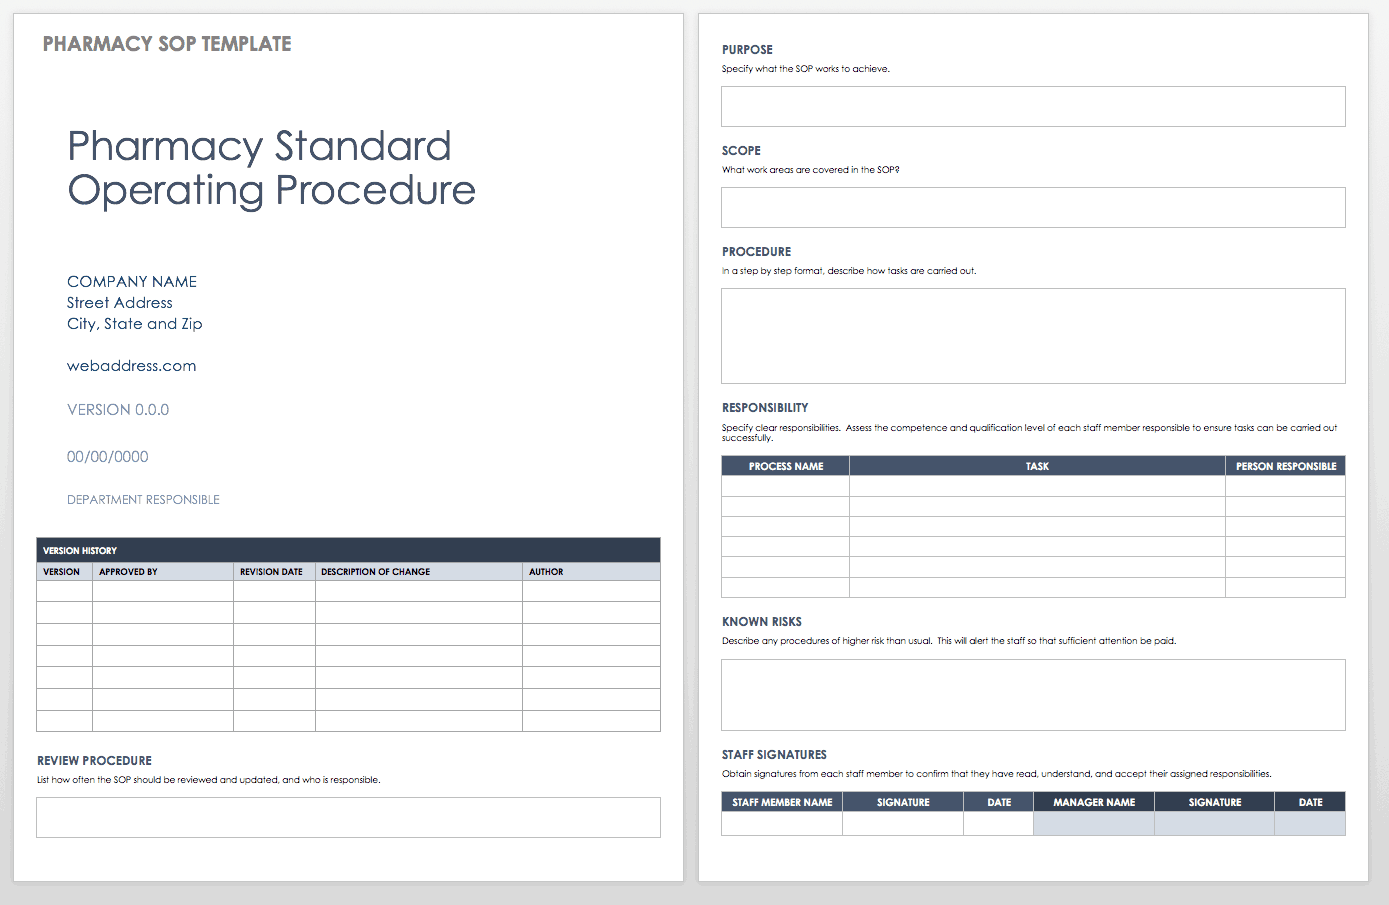 Pharmacy Standard Operating Procedure Template